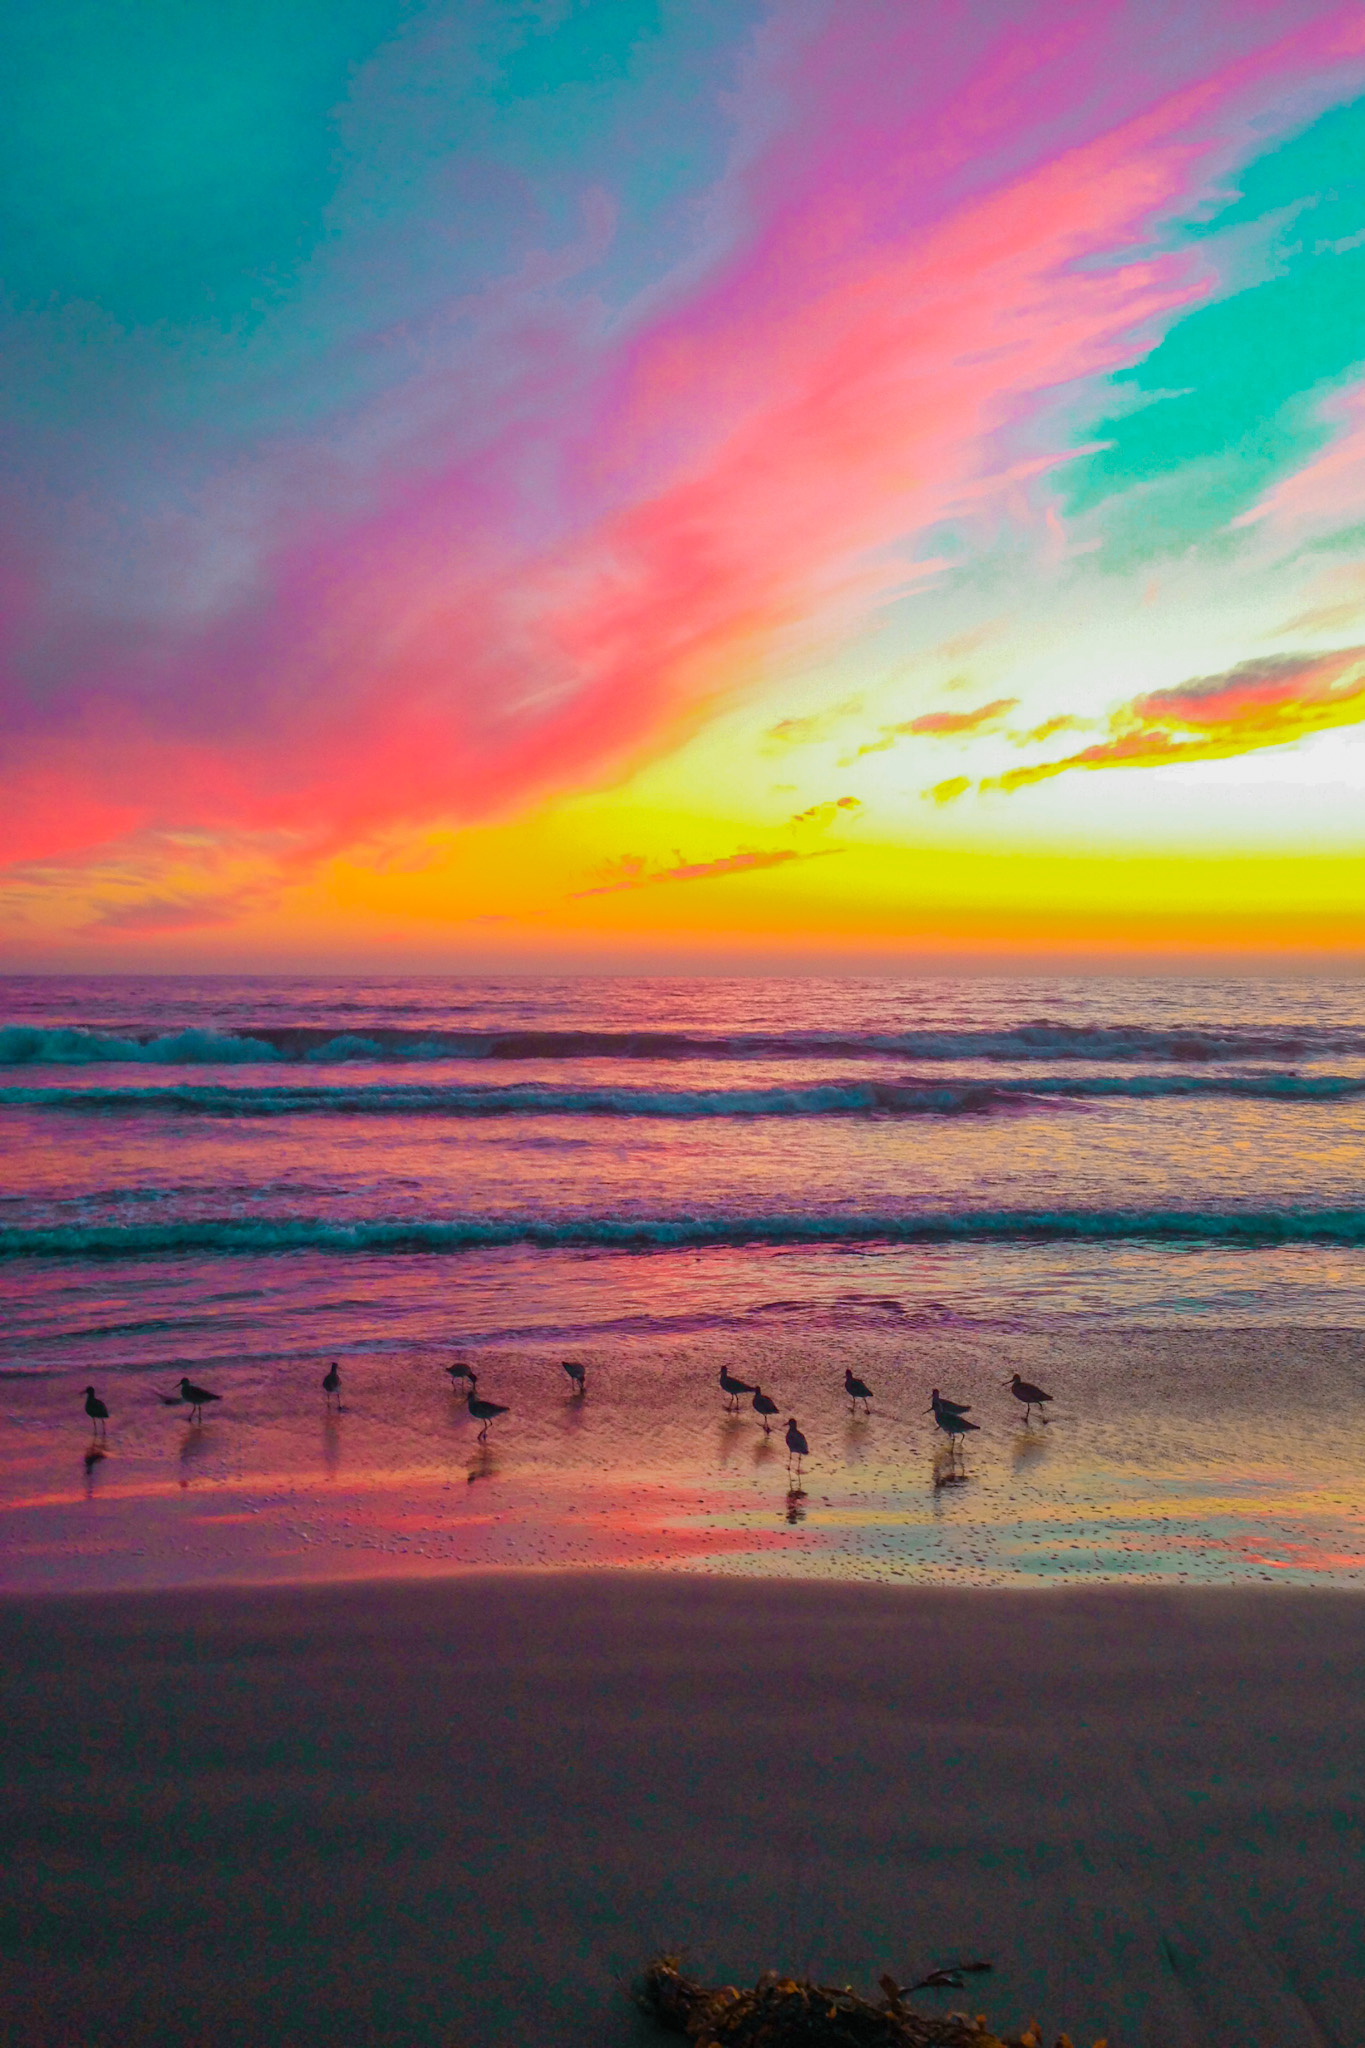 santa monica sunset beach rainbow colors and birds